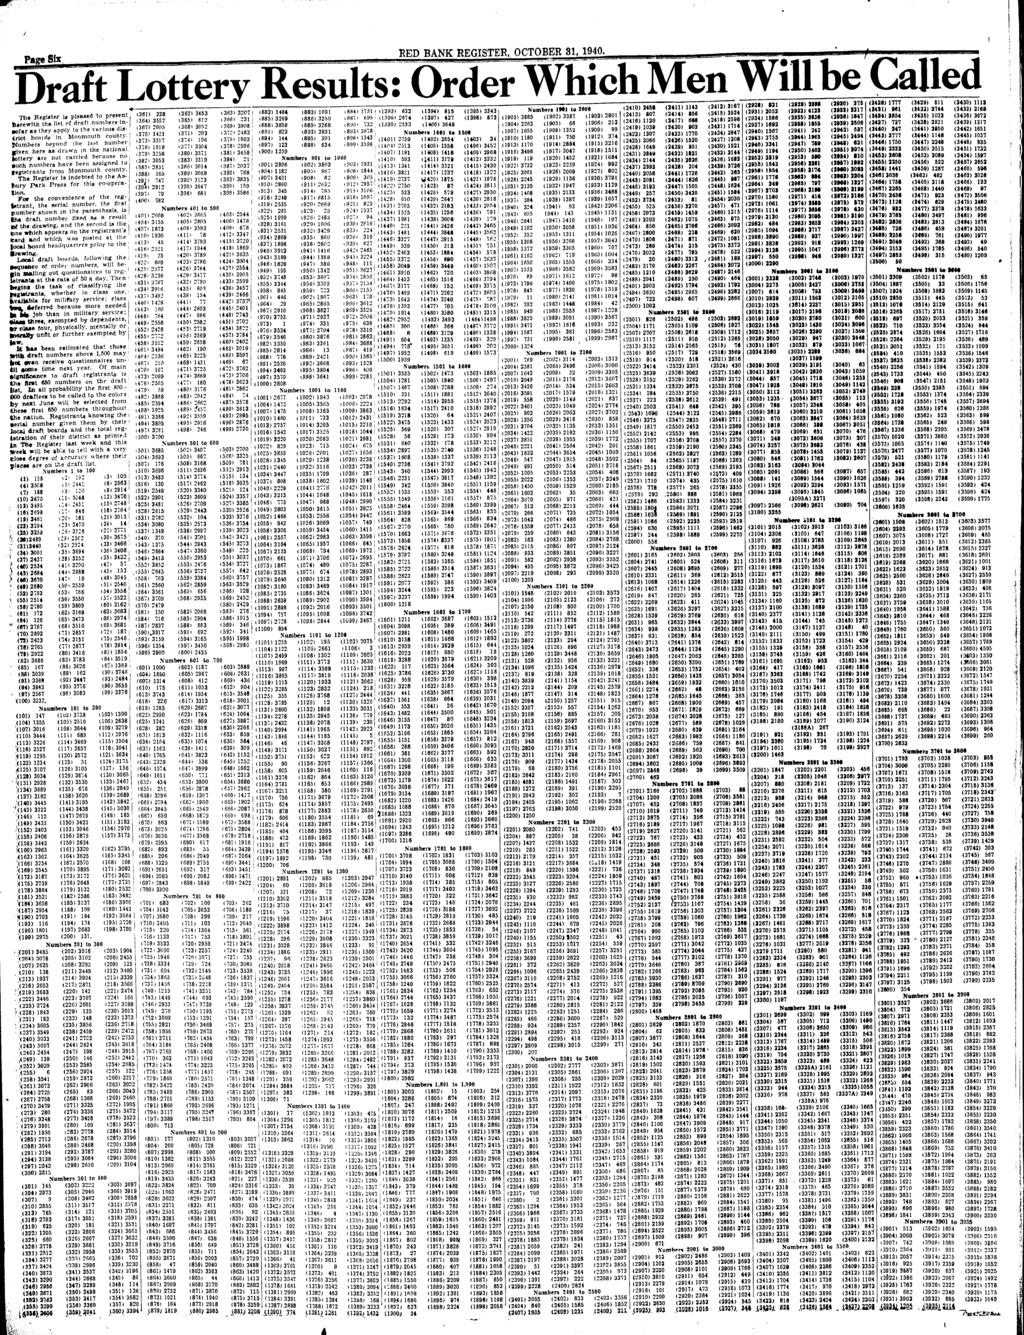 ei RED BANK REGISTER. OCTOBER 31, 1940. Draft Lottery Results: Order WhichMen...'.«,.,»; ^ T n T,,8S5)14IU (««3)iO9i,884)1751,(1393)632 (1394)815 (1395)3343, Number.